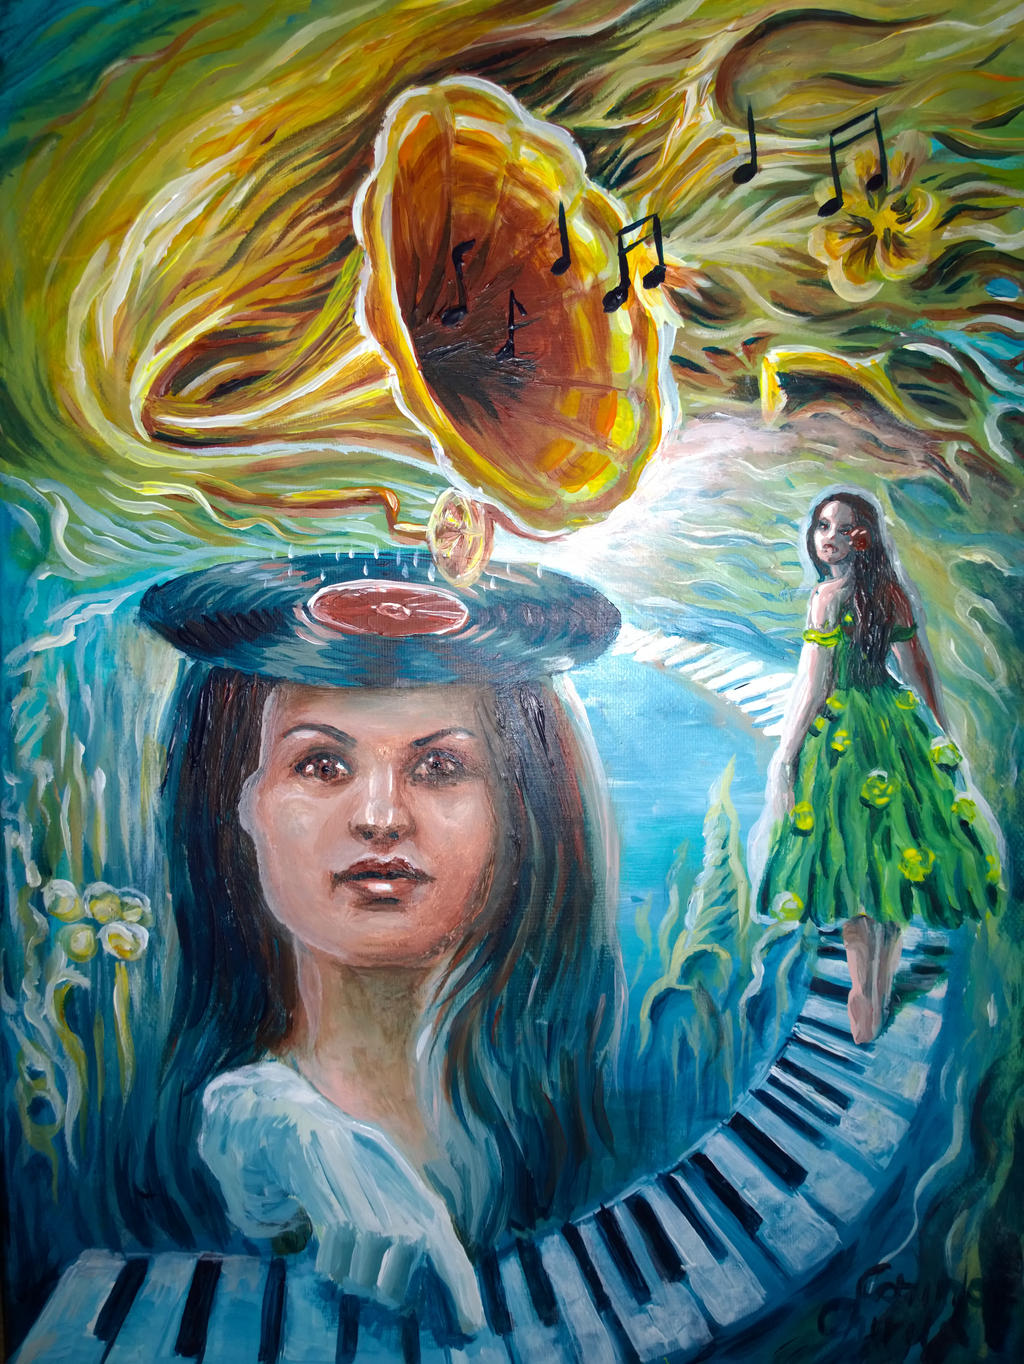 Piano - A painting about music by CORinAZONe